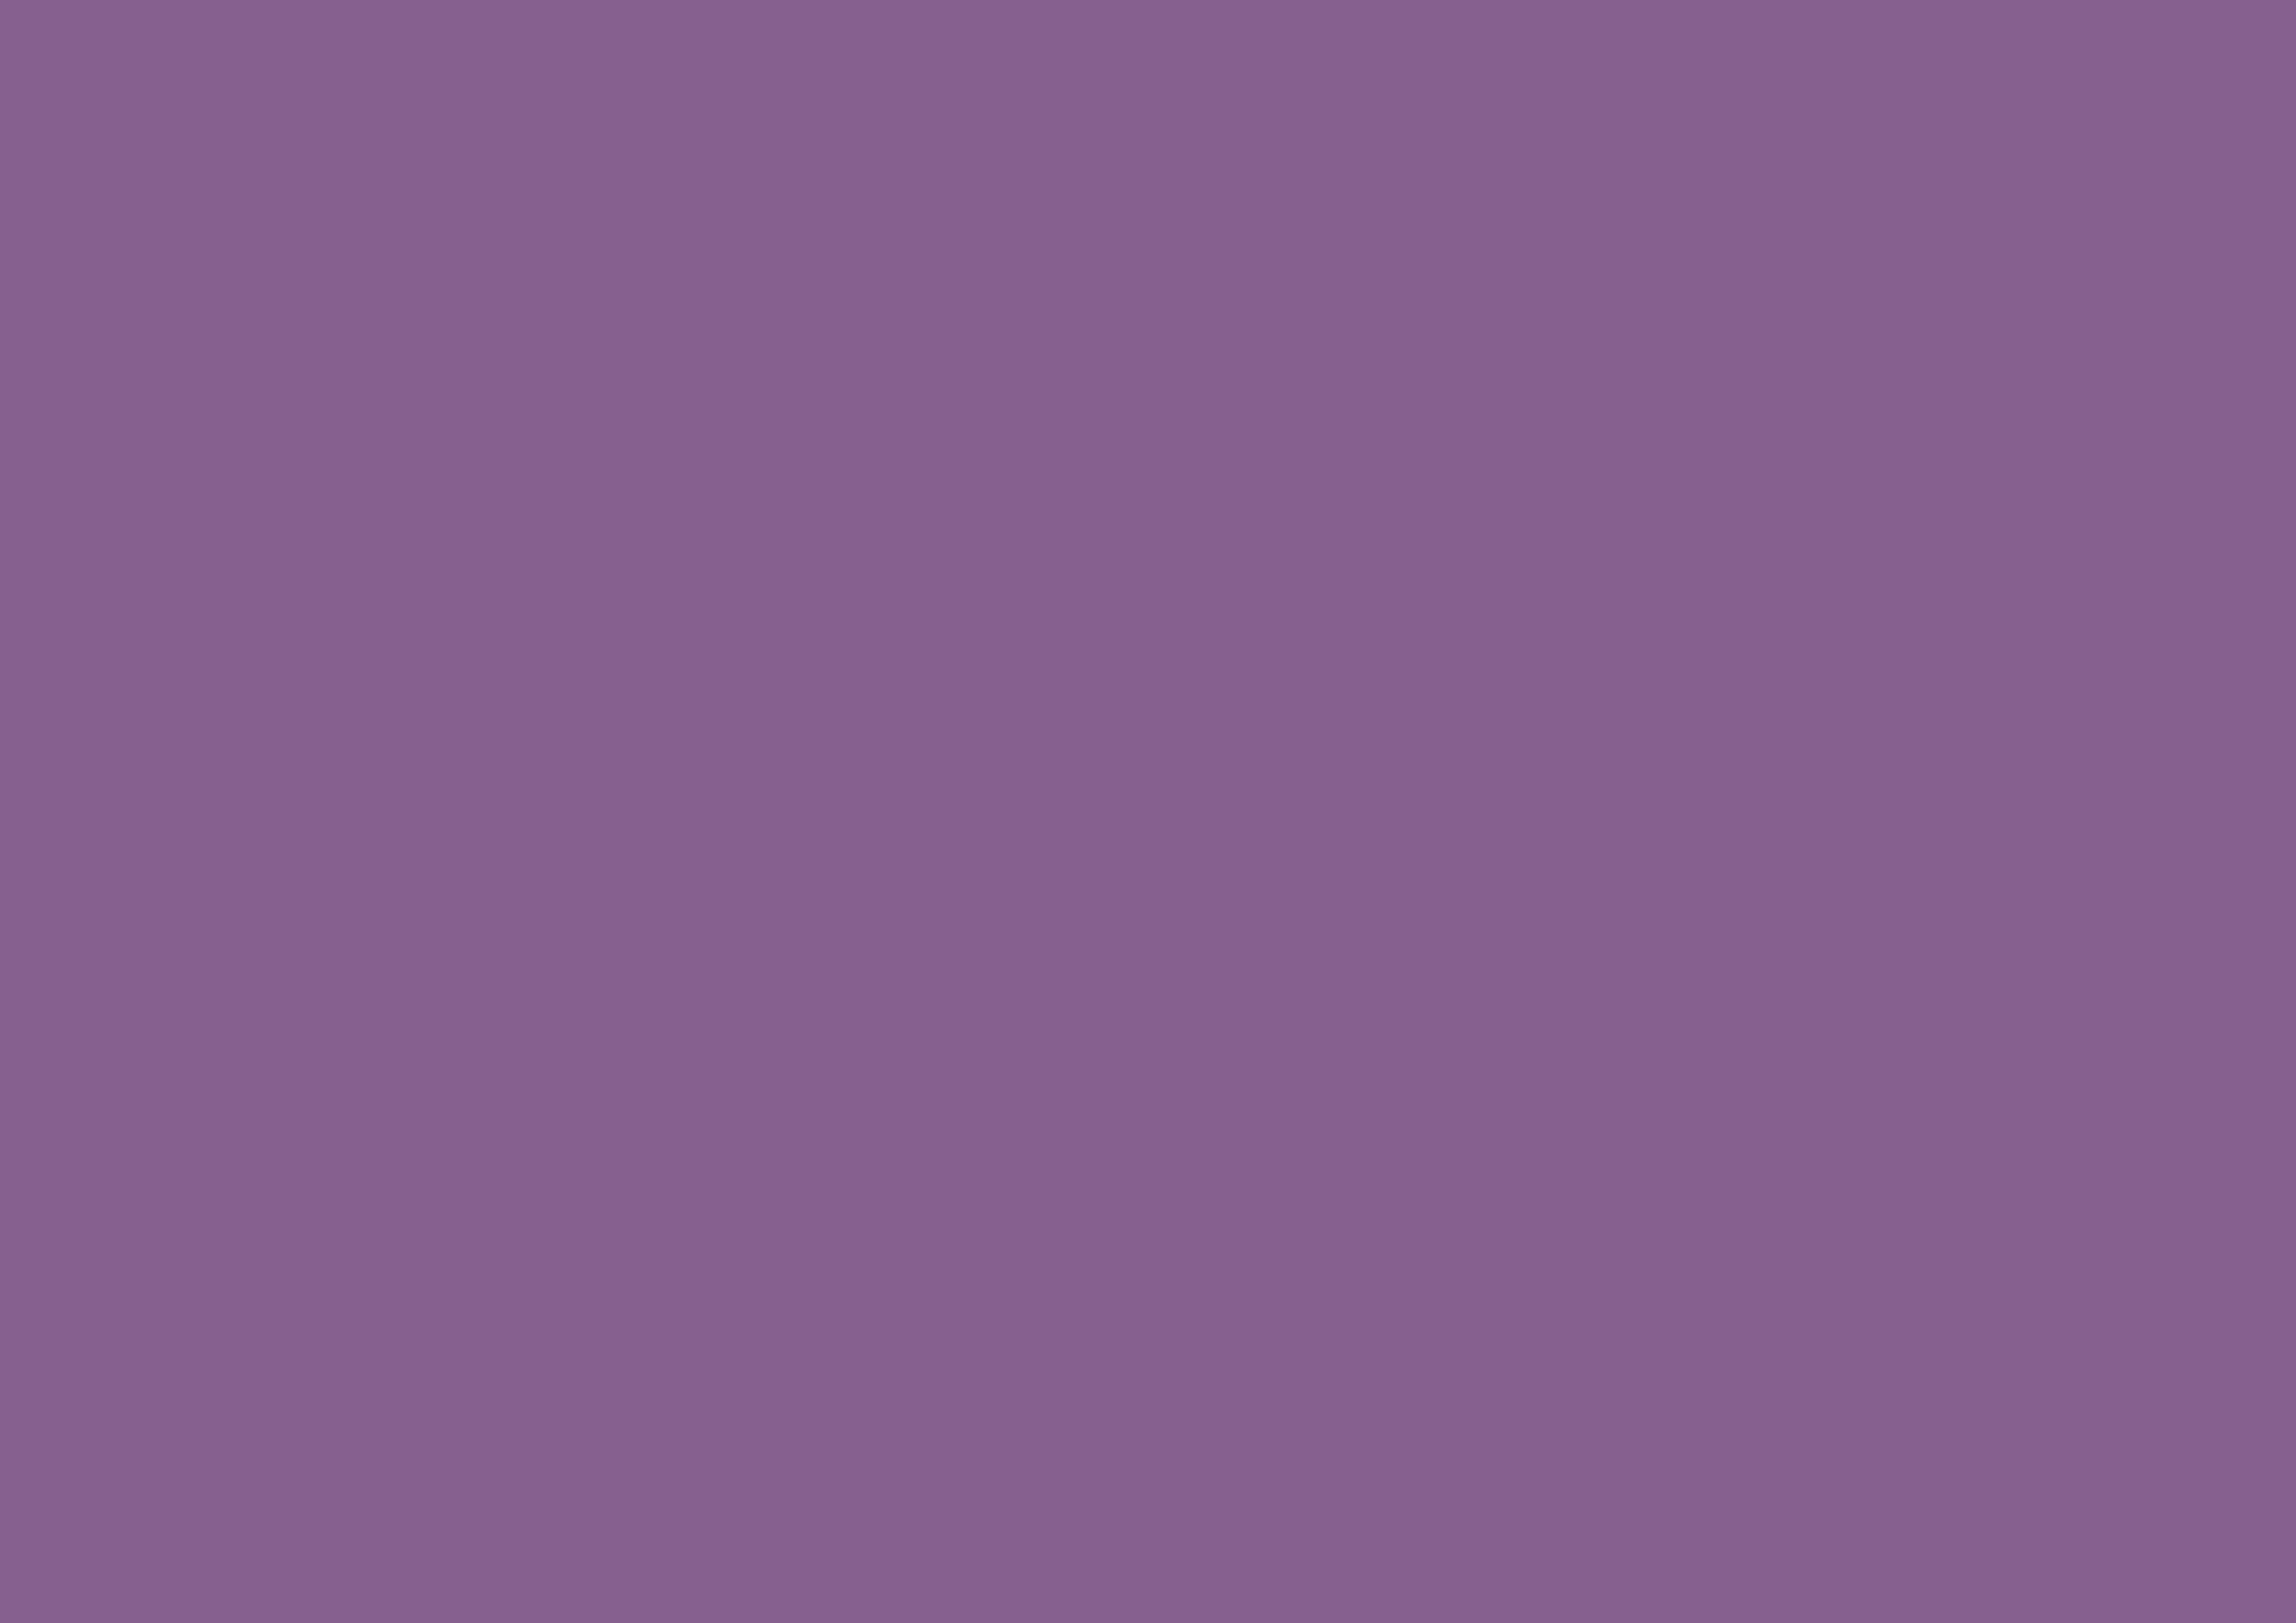 3508x2480 French Lilac Solid Color Background